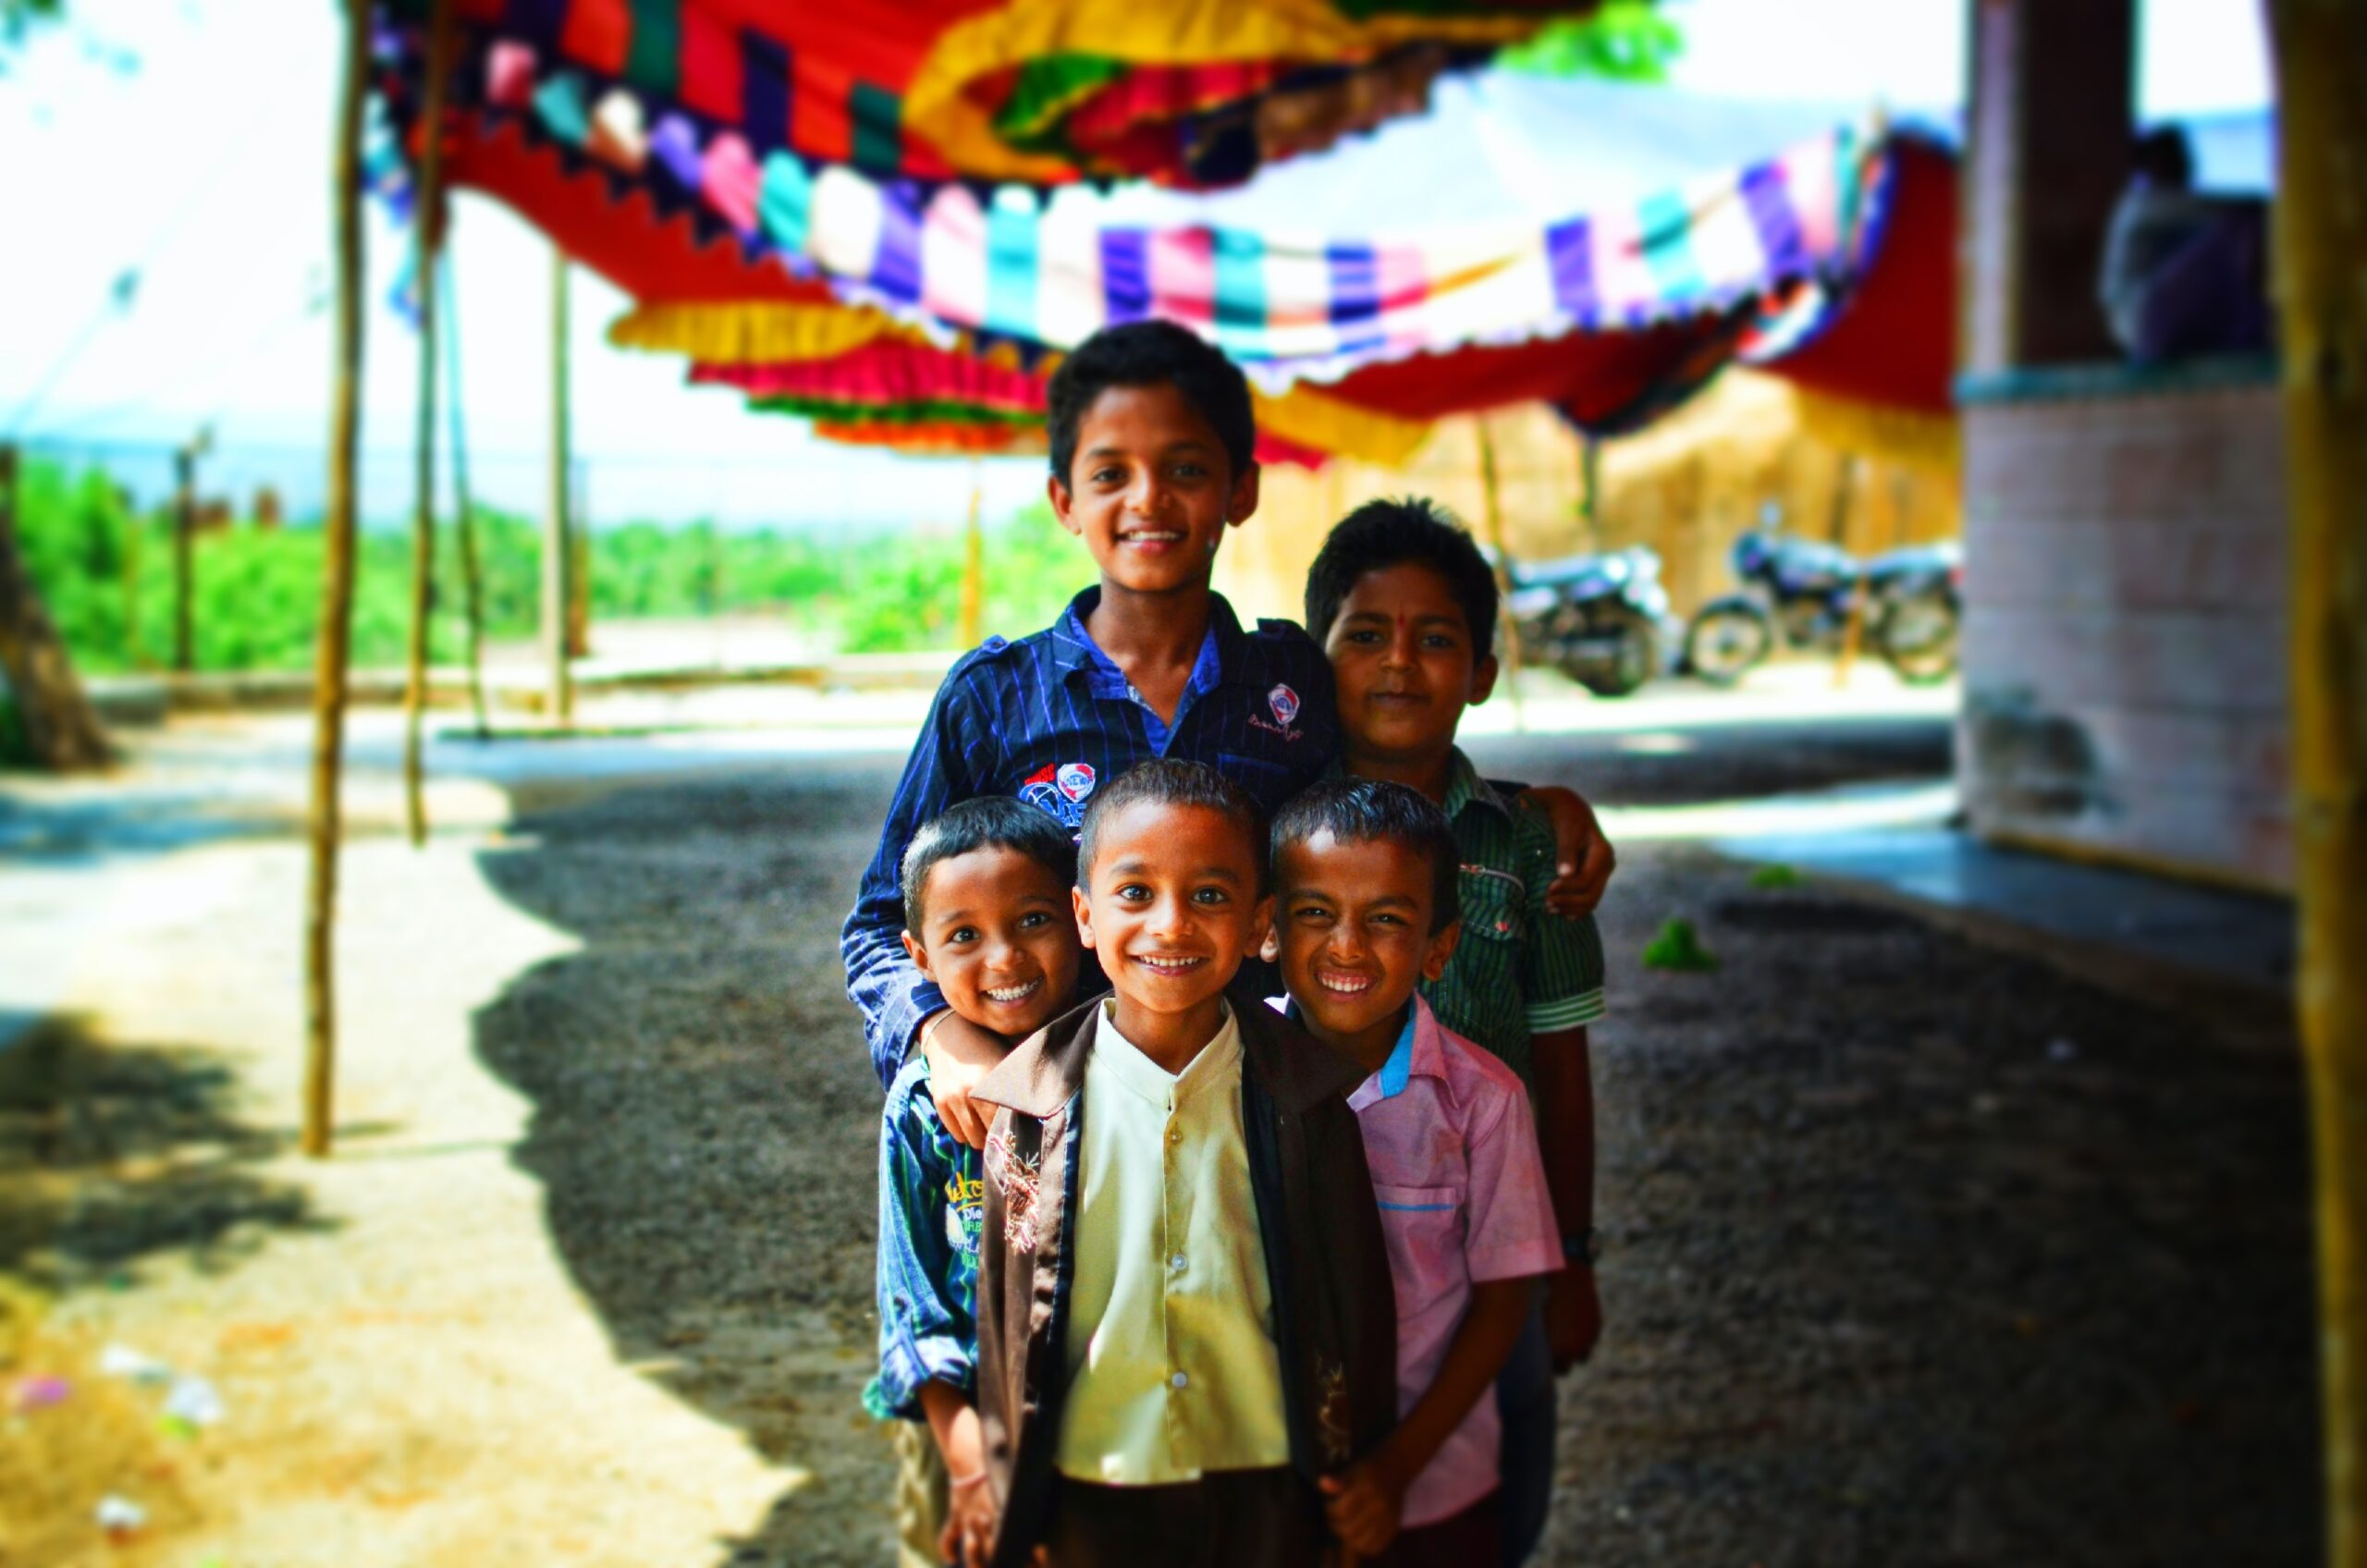 devaiah-mallangada-5 Children grouped close together-unsplash